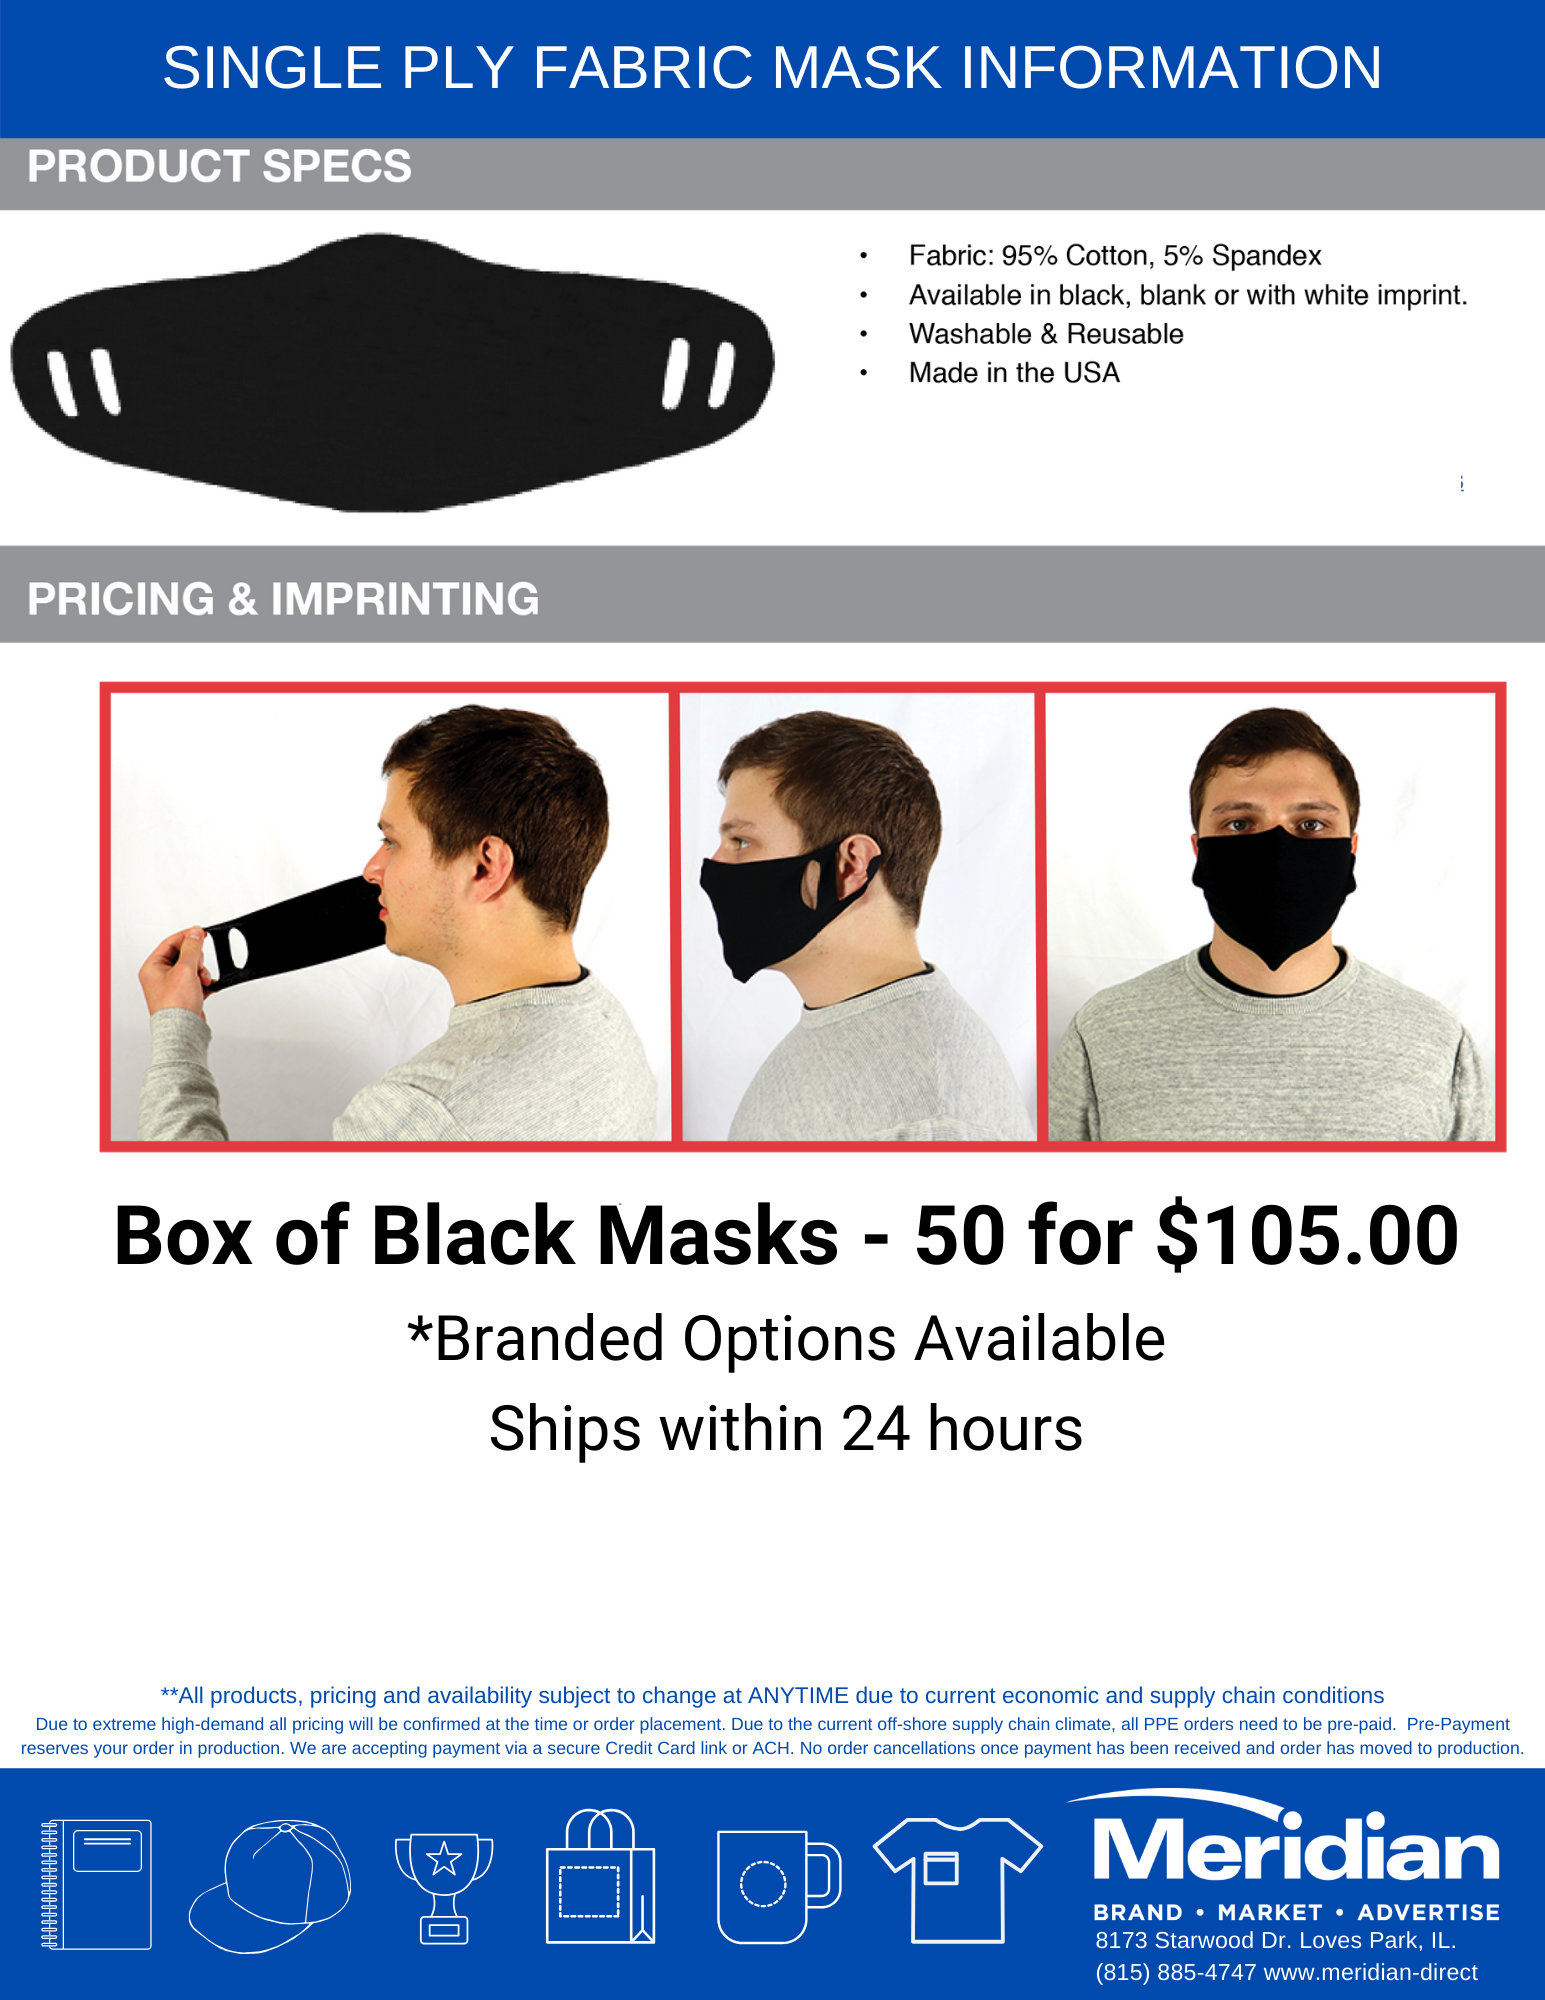 SINGLE-PLY-FABRIC-MASK-INFORMATION